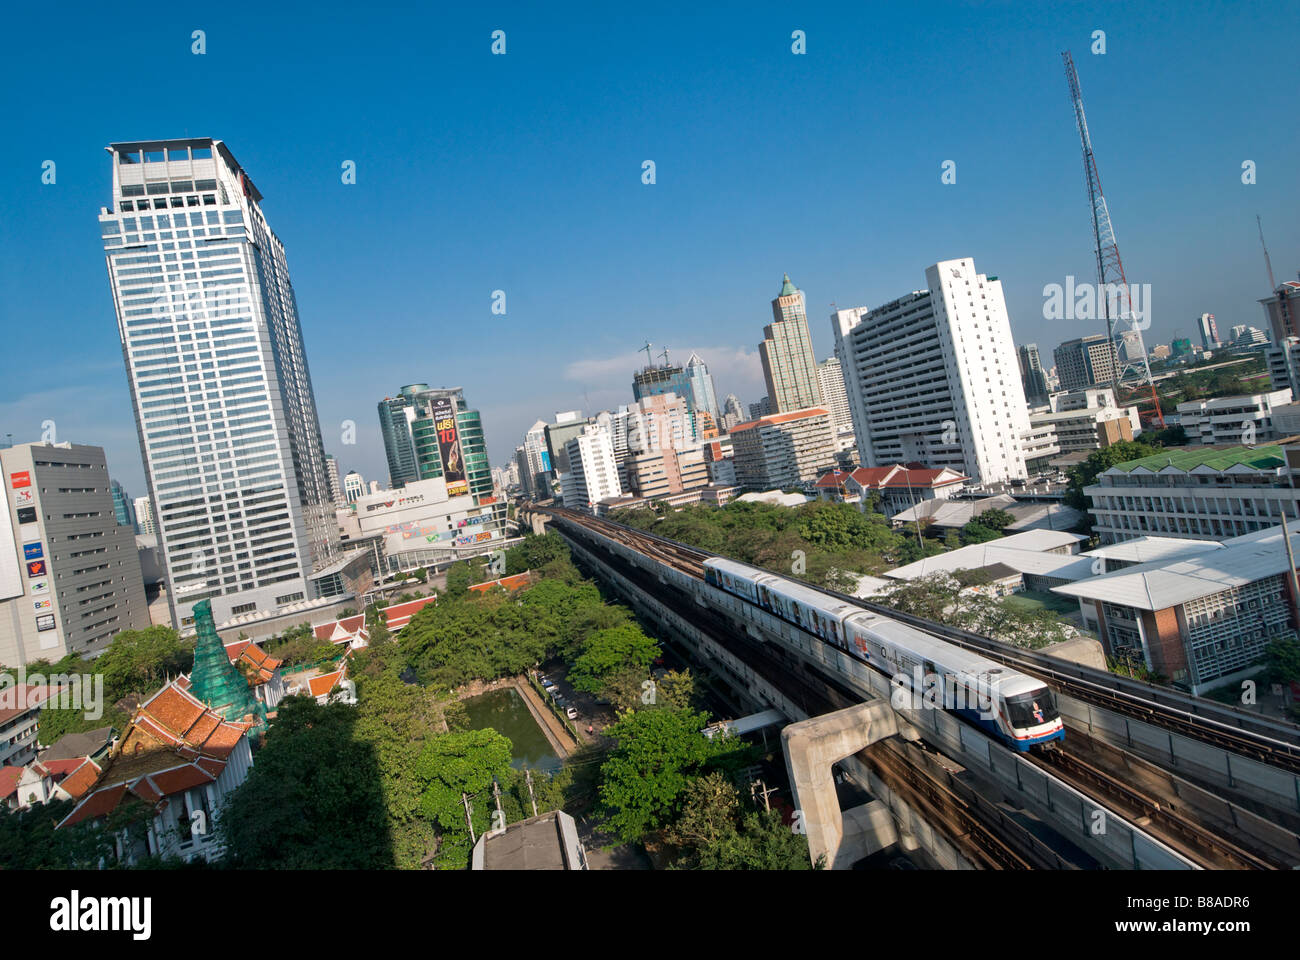 BTS SkyTrain elevated privately run Bangkok Transit System Pathumwan district in central Bangkok Thailand - Stock Image